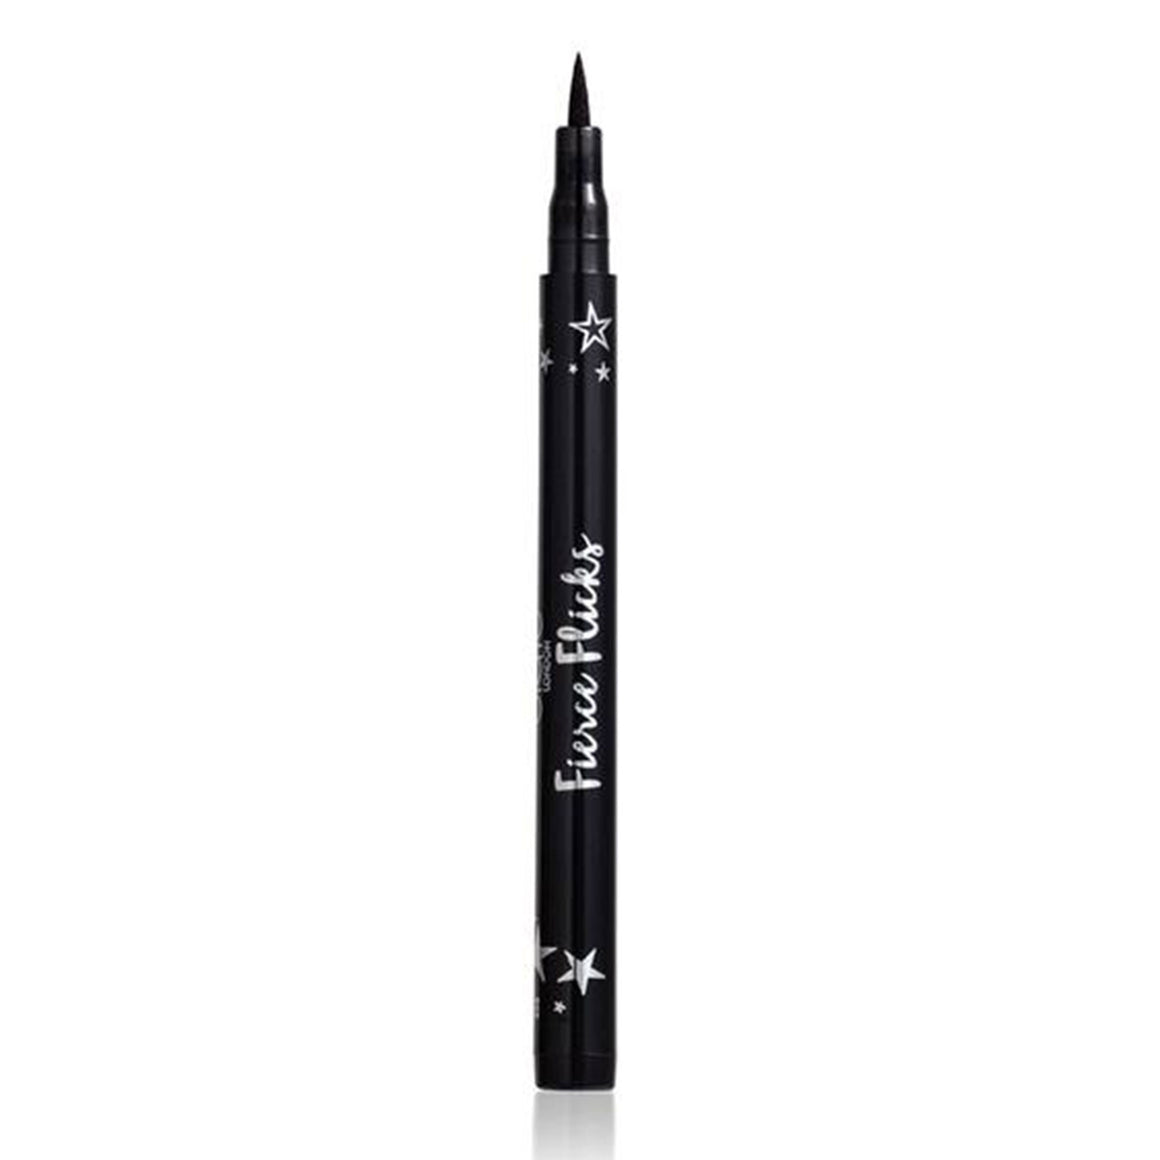 Ciate London - Fierce Flicks Precision Tip Liquid Liner 1.7 ml